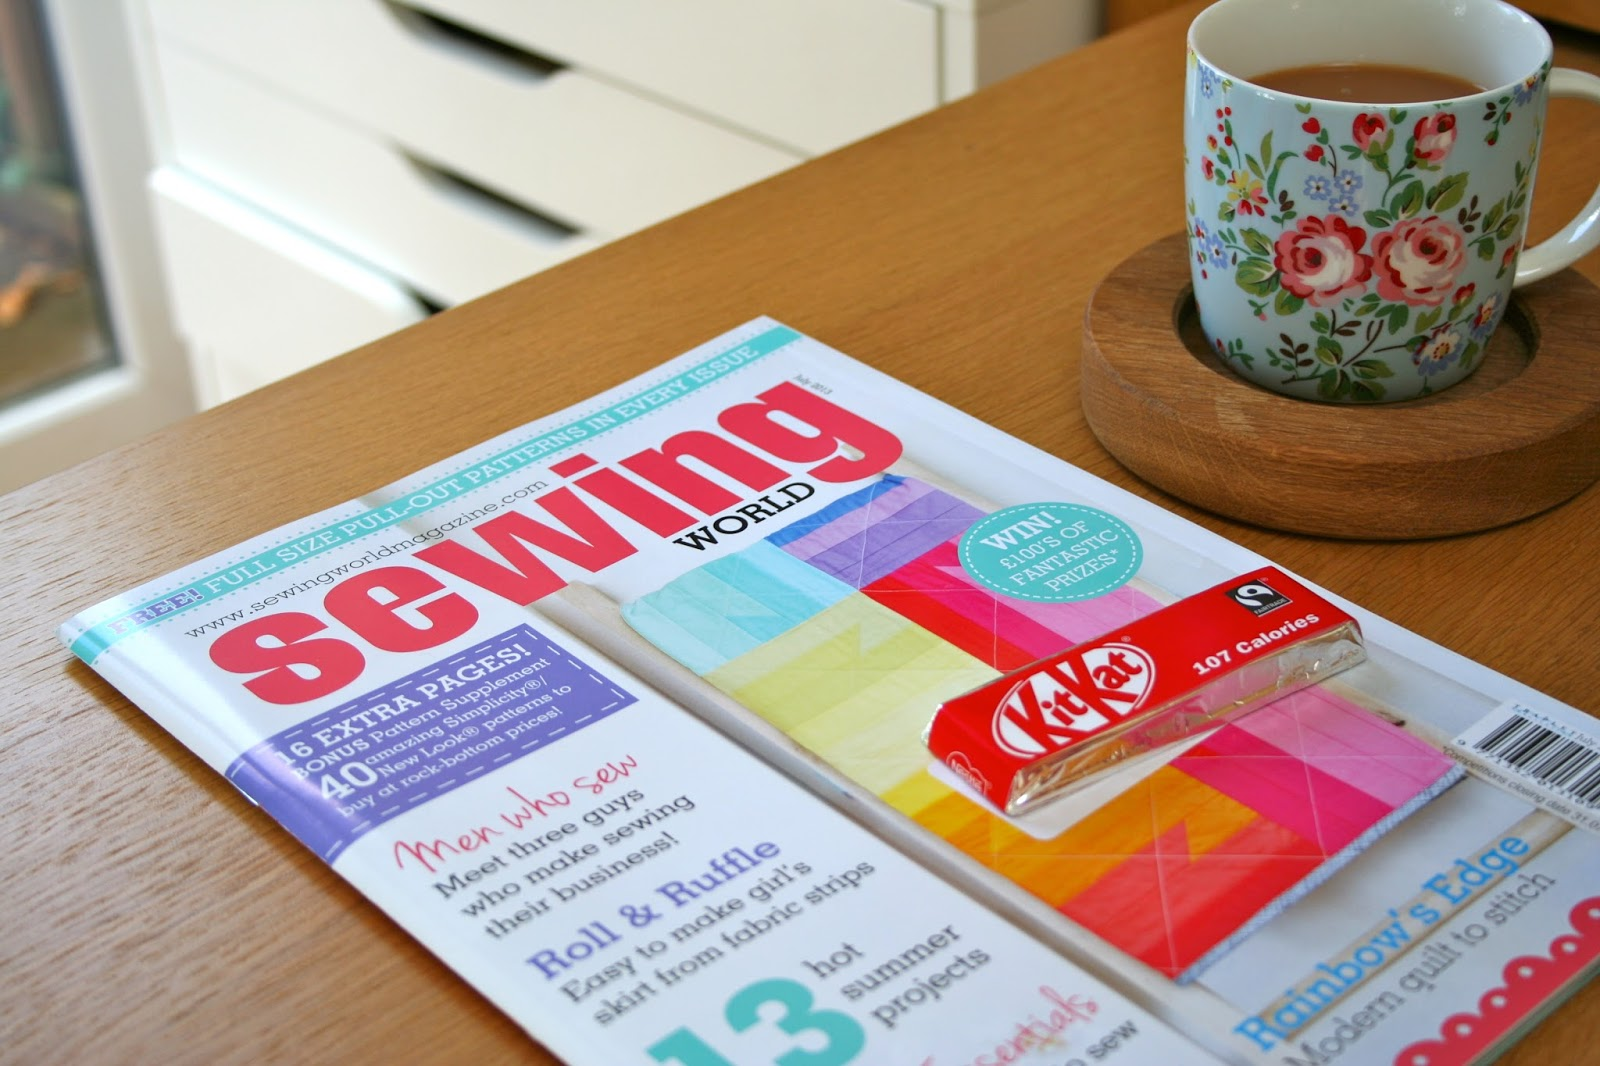 Evajeanie and the sewing machiney review sewing world magazine now as im sure youll have noticed it has been a very busy time here at evajeanie what with the world and their granny ordering bunting and my little eva jeuxipadfo Choice Image